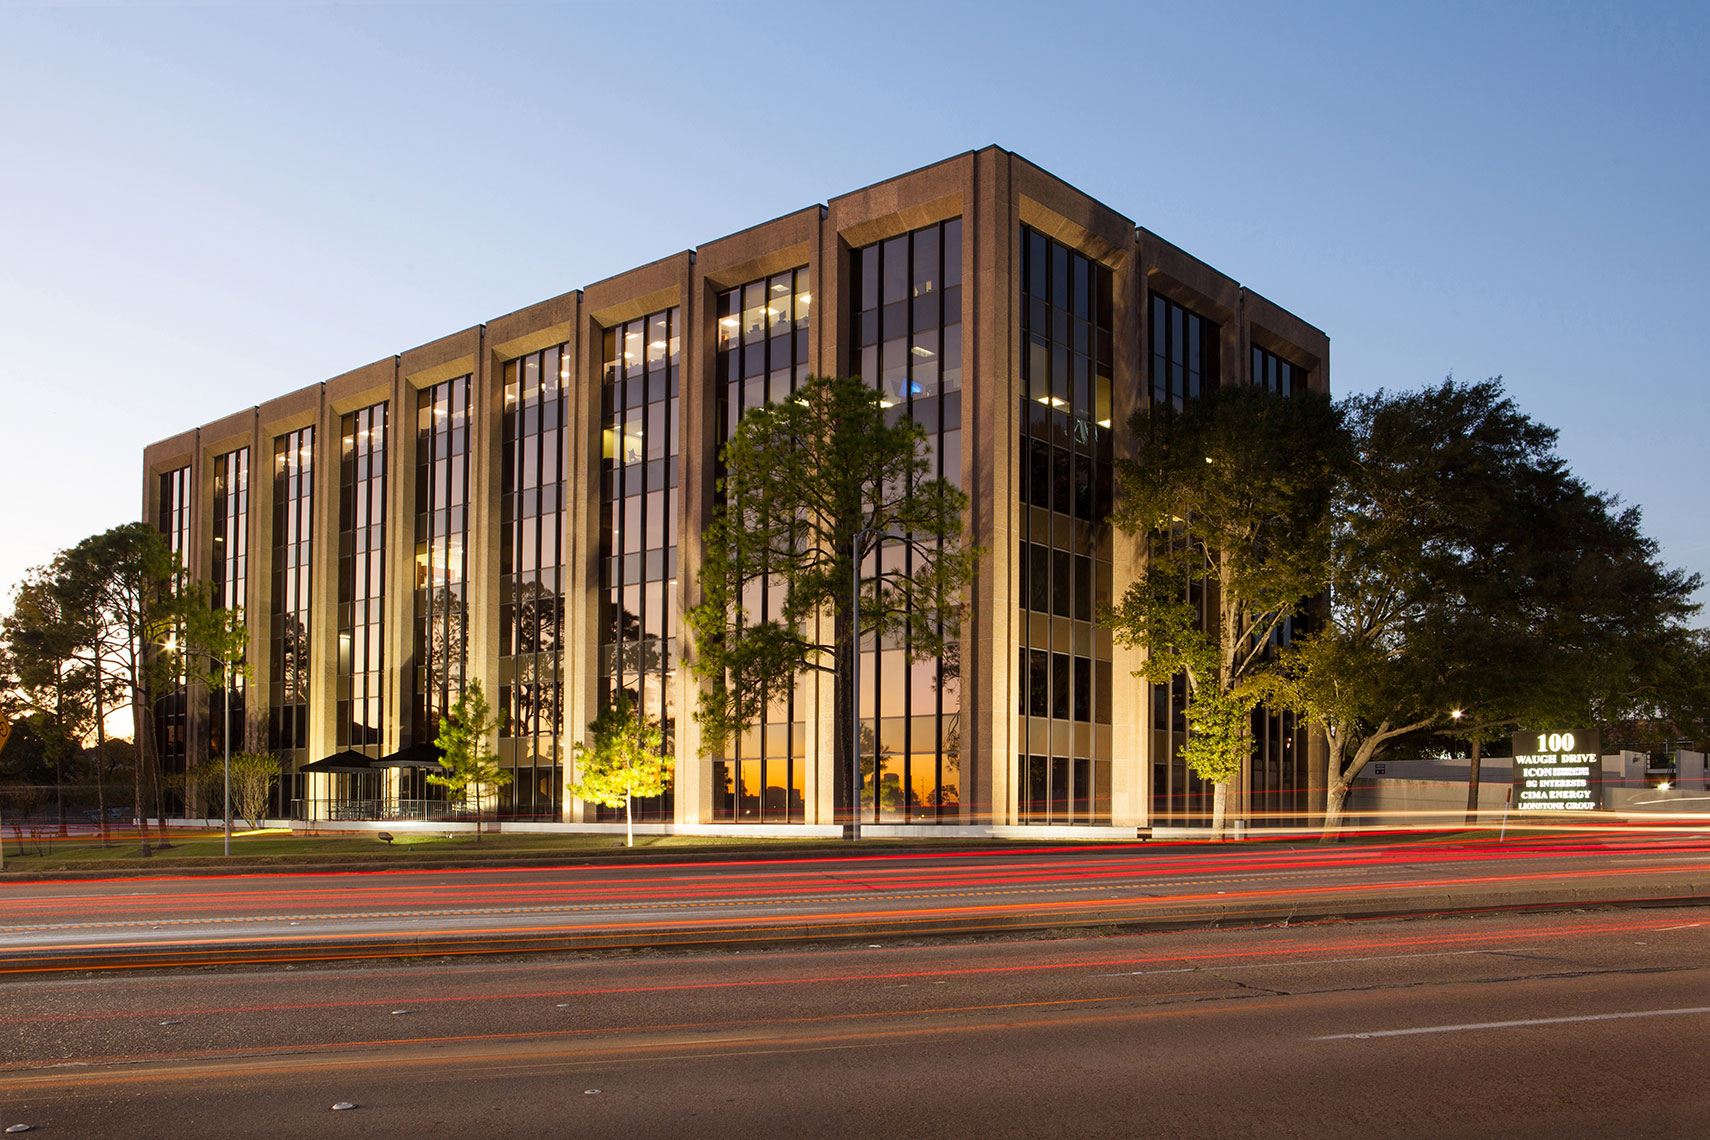 100 Waugh in Houston Texas a midsized office building by an Architectural Photographer